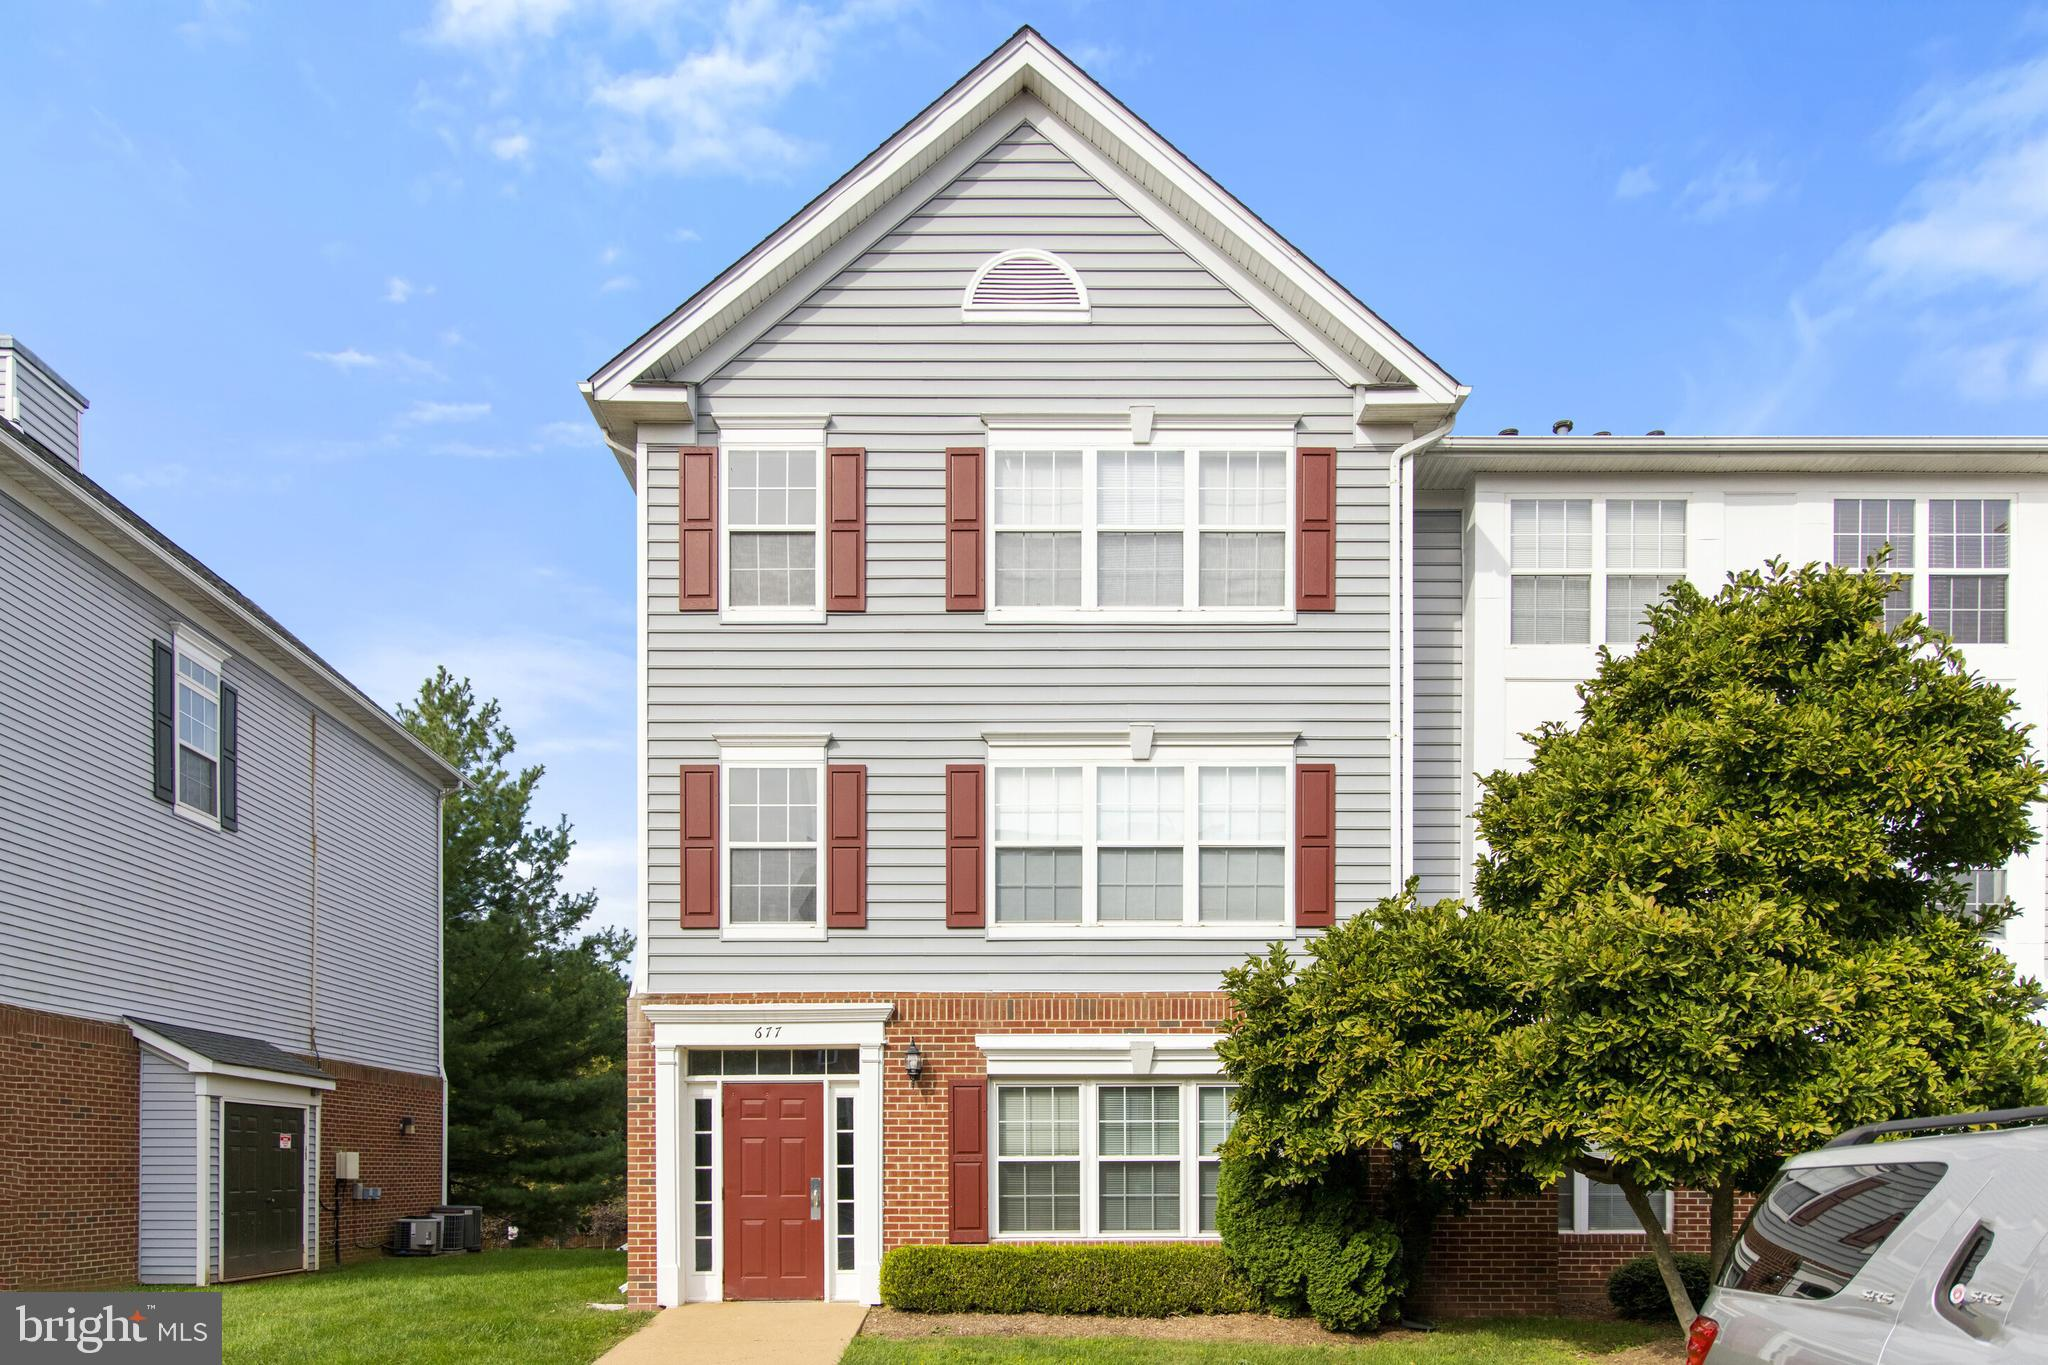 WELCOME HOME TO 677 CONSTELLATION SQ SE #B, LEESBURG, VA 20175, located in the Leesburg Gateway II Condominium Community. Beautiful Condominium with 2 Primary Bedrooms with Walk-In Closets; 2 Full Bathrooms, and Includes Living Room, Dining Room, Large Kitchen with Laundry Room, Utility Room, Patio Door to Covered Deck Overlooking Trees and Common Area. This home has 1,035 Finished Sq Ft of Living Space and is located on 2nd Floor, and the Building Only has 3 Units Providing Semi-Private Living Space with Only 1 Condominium Unit on Each Floor. This Home is Perfectly Located in a Highly Sought-After Community Due its Convention Location to Downtown Leesburg, along with a Very Modest Low Condominium Fees of $240 Per Month. Condominium Fees Include Community Outside Swimming Pool, Gym, Clubhouse, Water/Sewer, Trash, Landscaping with Snow Removal and Exterior Maintenance (excludes Windows). This Home has Two Parking Spaces with One Being Assigned in Front of Building and Second One In Any Visitor Parking with Overnight Parking Pass Displayed.  Recent updates to this property include the Following:  Freshly Painted (9/2021); New Carpet (9/2021); Bathroom Flooring (2021); New HVAC System (2021); Toilets Upgraded (2020); New Washer / Dryer (2020); New Natural Gas Stove / Oven (2019); New Natural Gas Hot Water Heater (2019); Refrigerator (2019).  Your soon to be New Home is Conveniently Located within Walking Distance to Downtown Leesburg, Farmers Market and Restaurants; Minutes to Major Shopping at Costco, Grocery Stores, Target, Walmart, Leesburg Premium Outlets; and Within an Easy Commuting Distance to Washington DC Which is Approximately 40 Miles East; Dulles International Airport; Metro Services in Reston VA and Coming Soon to Ashburn VA Which is Within 20-30 Minutes. Other Local Points of Interest Include Nearby Historic Morven Park that Offers Hundreds of Outdoor Activities; Ida Lee Park that Offers a Recreation Center, Fitness Center, 2 Indoor pools, Basketball, Rac